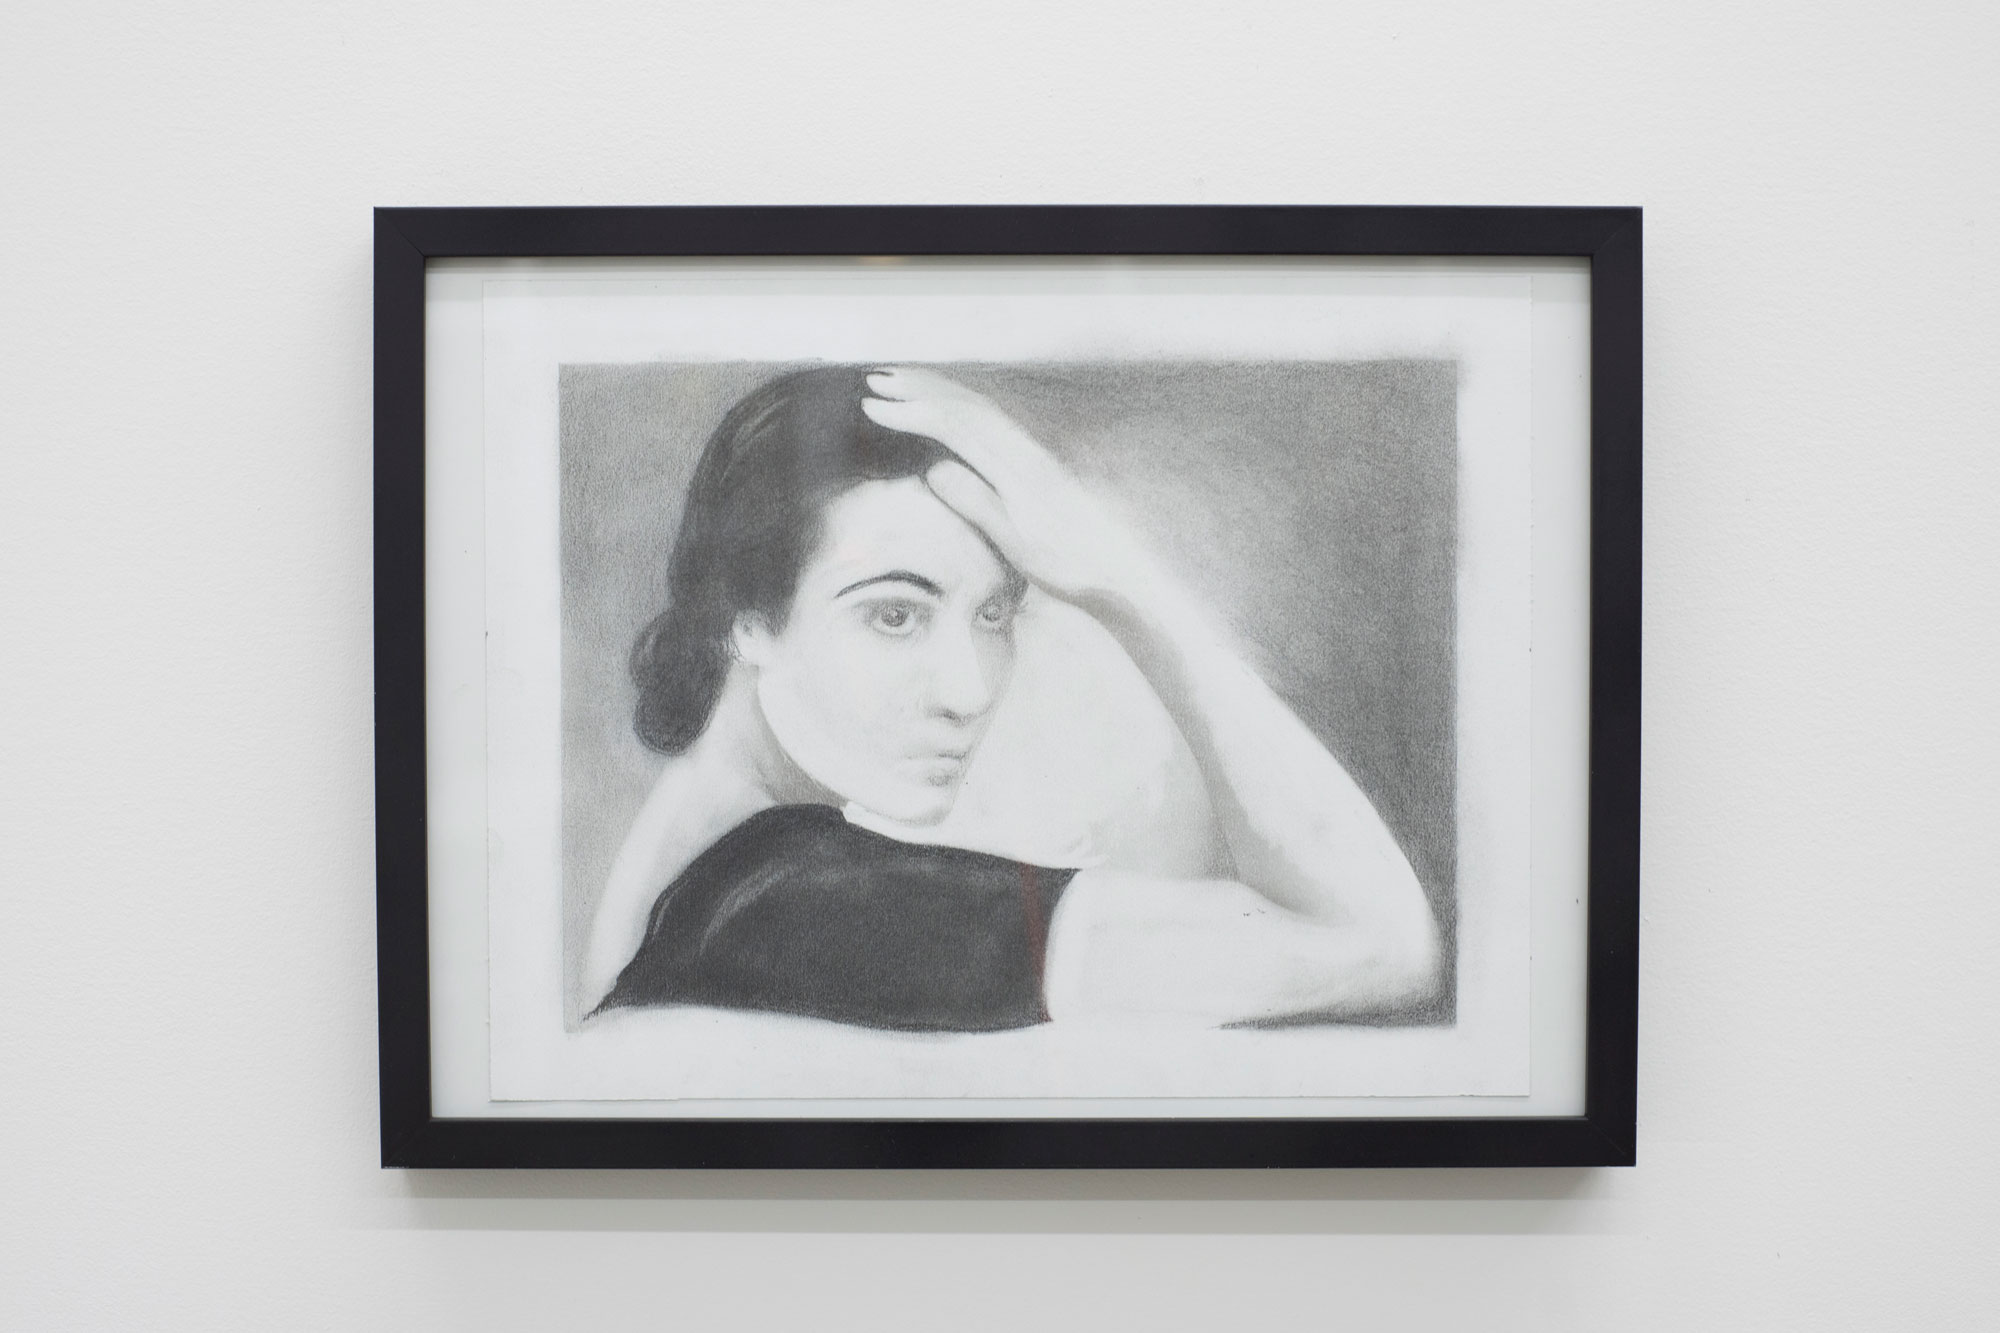 Copy of a Copy of a Copy of a Copy: Delores Del Rio (for A), graphite and toner on paper, 2018